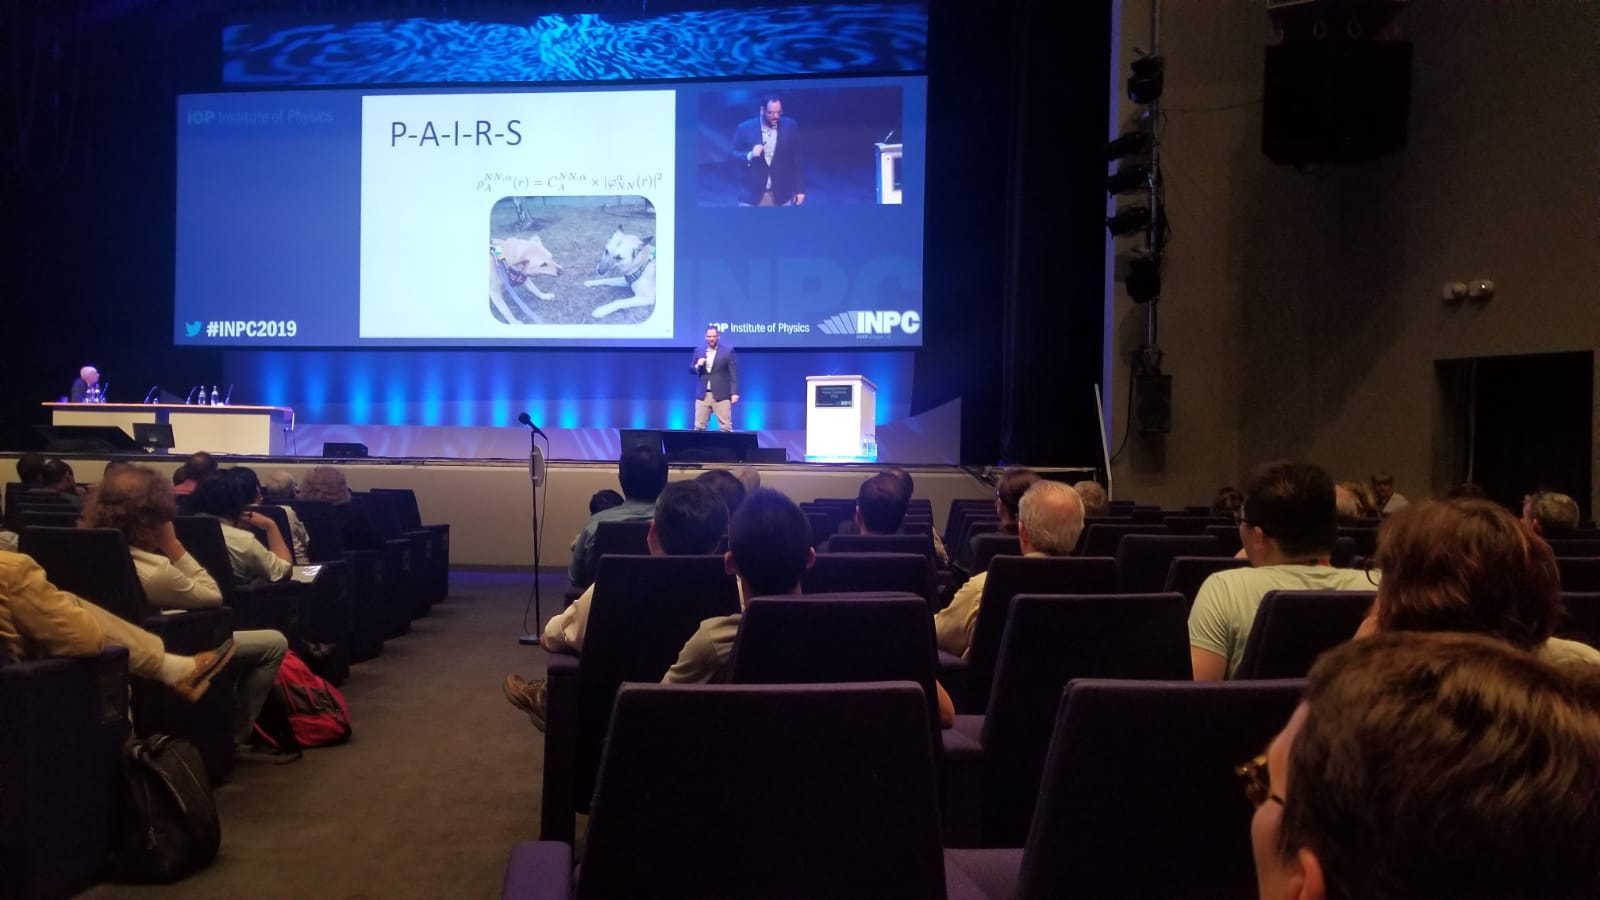 Or - INPC Plenary (July 2019)